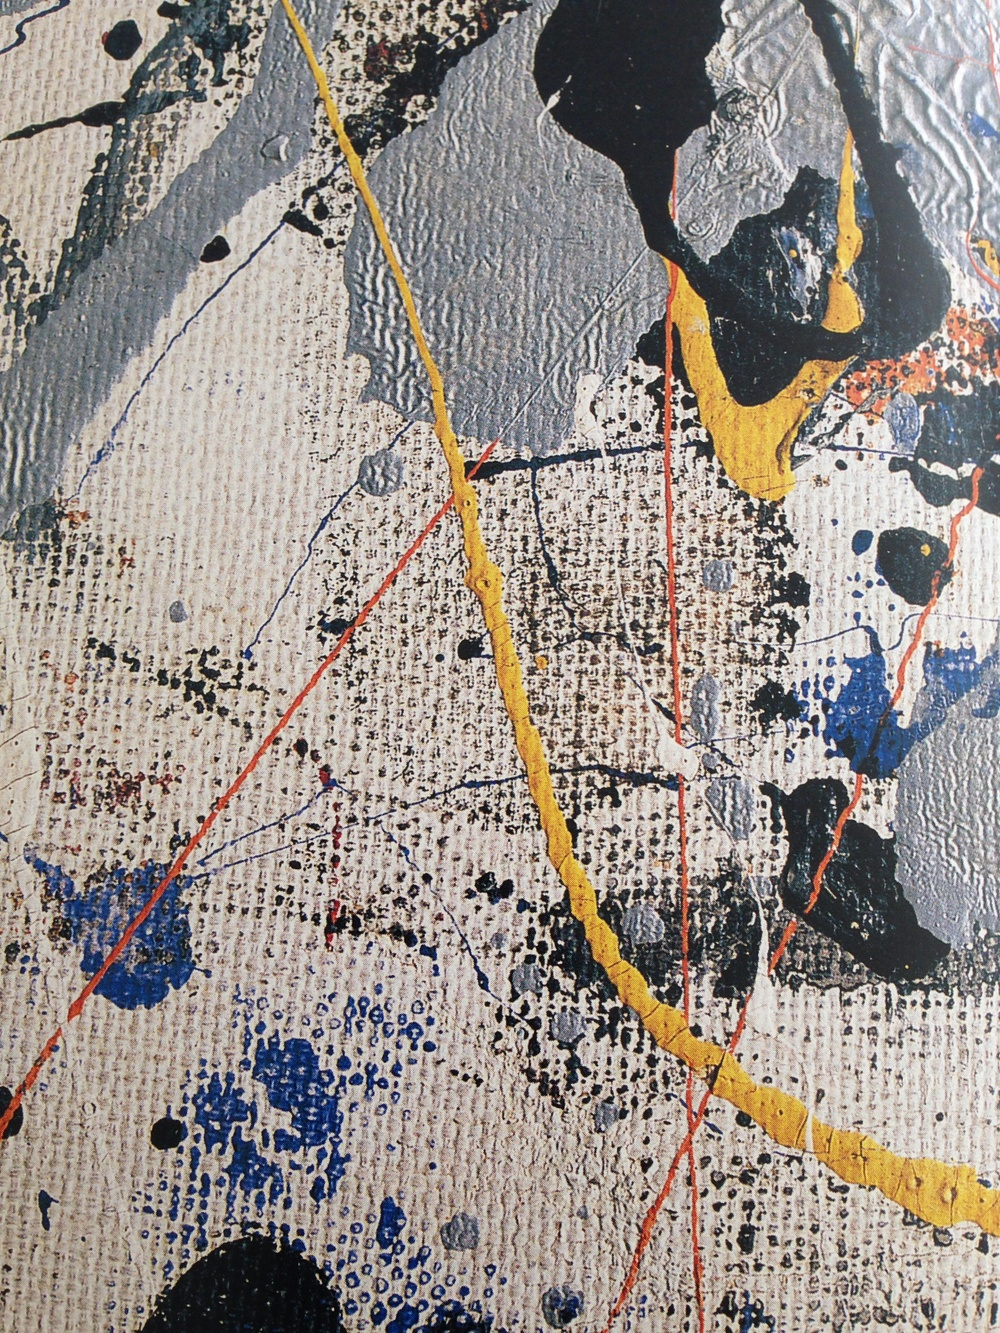 detail from Blue Poles